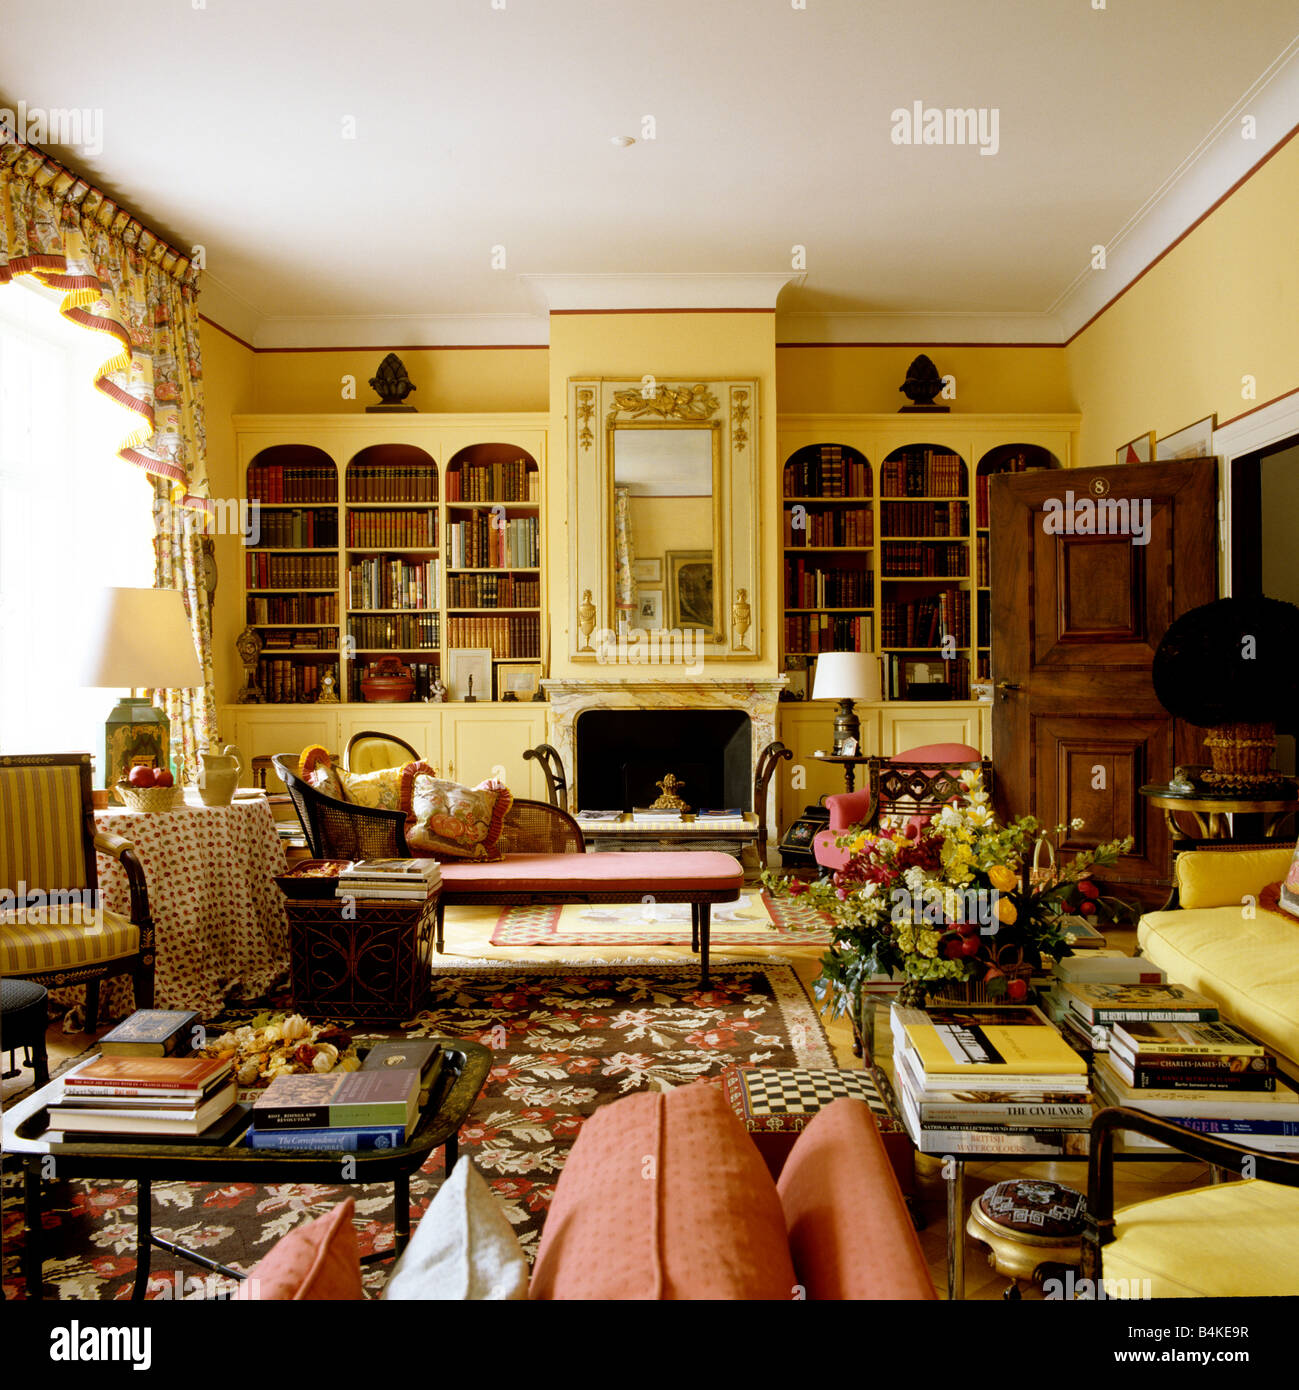 Traditional Interior Design Drawing Room Interior Country House England Stock Photo Royalty